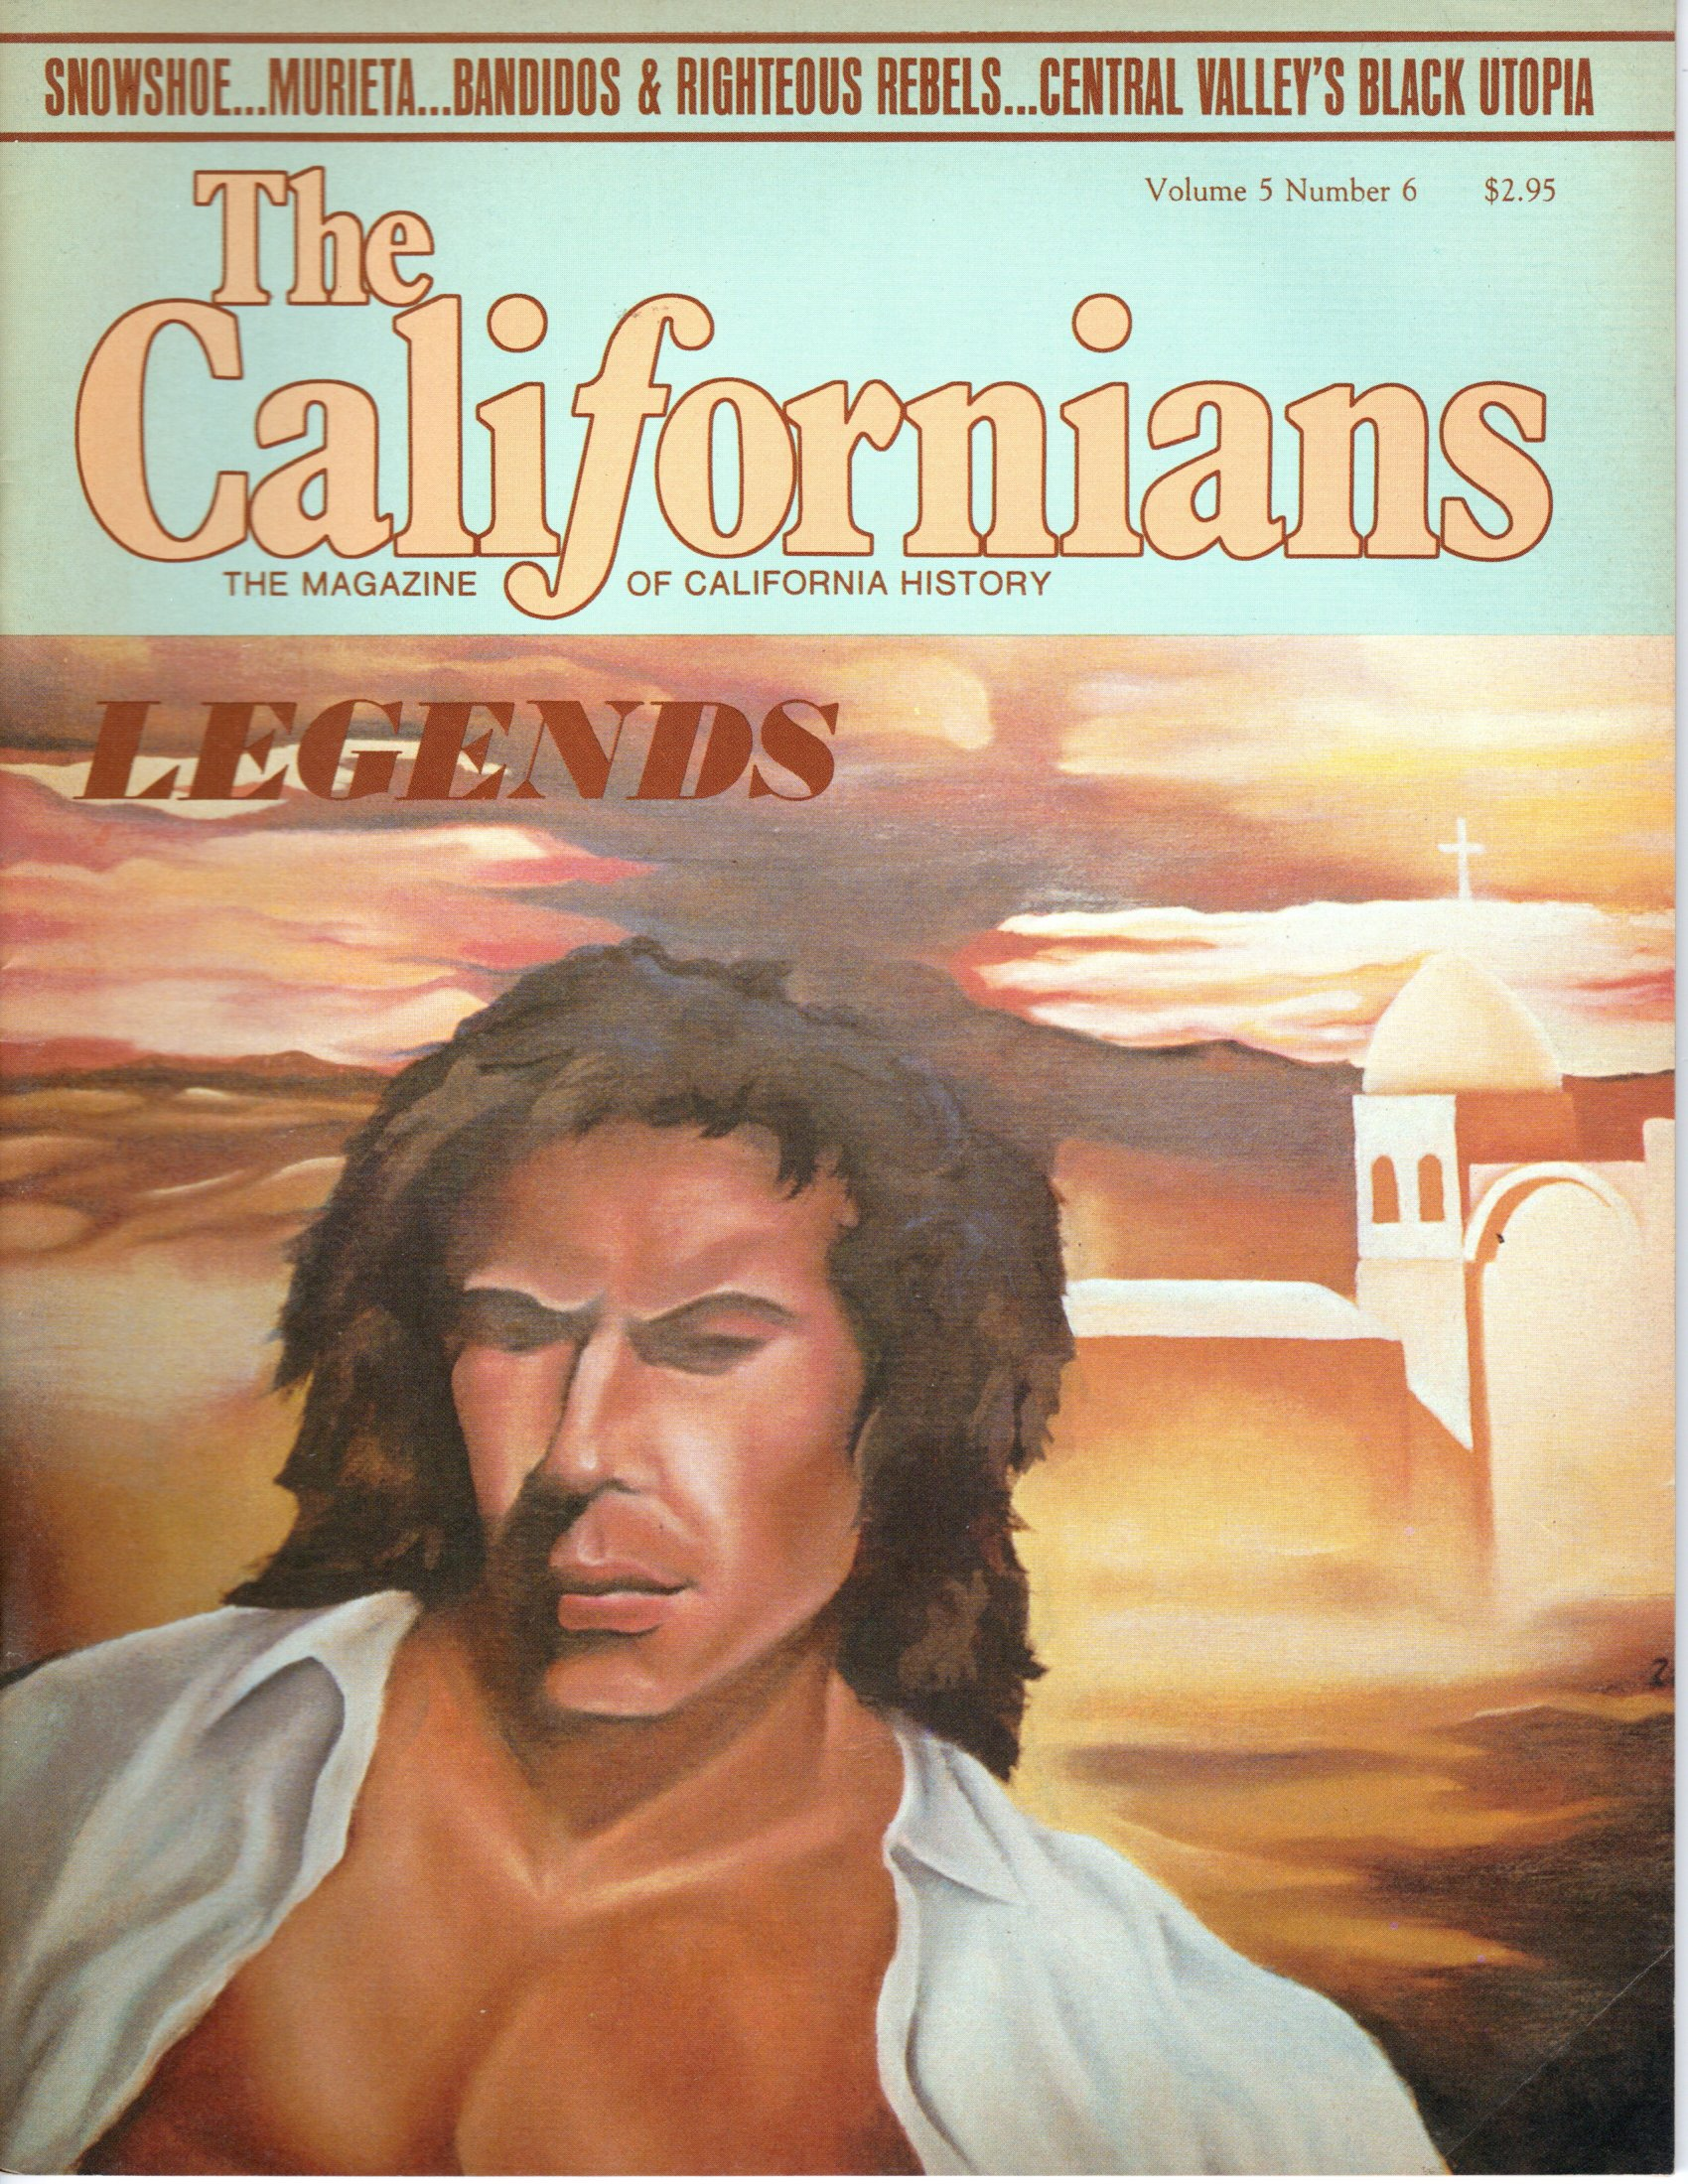 Image for The Californians. The Magazine of California History. Legends.  [Volume 5, Number 6, November/December 1987]